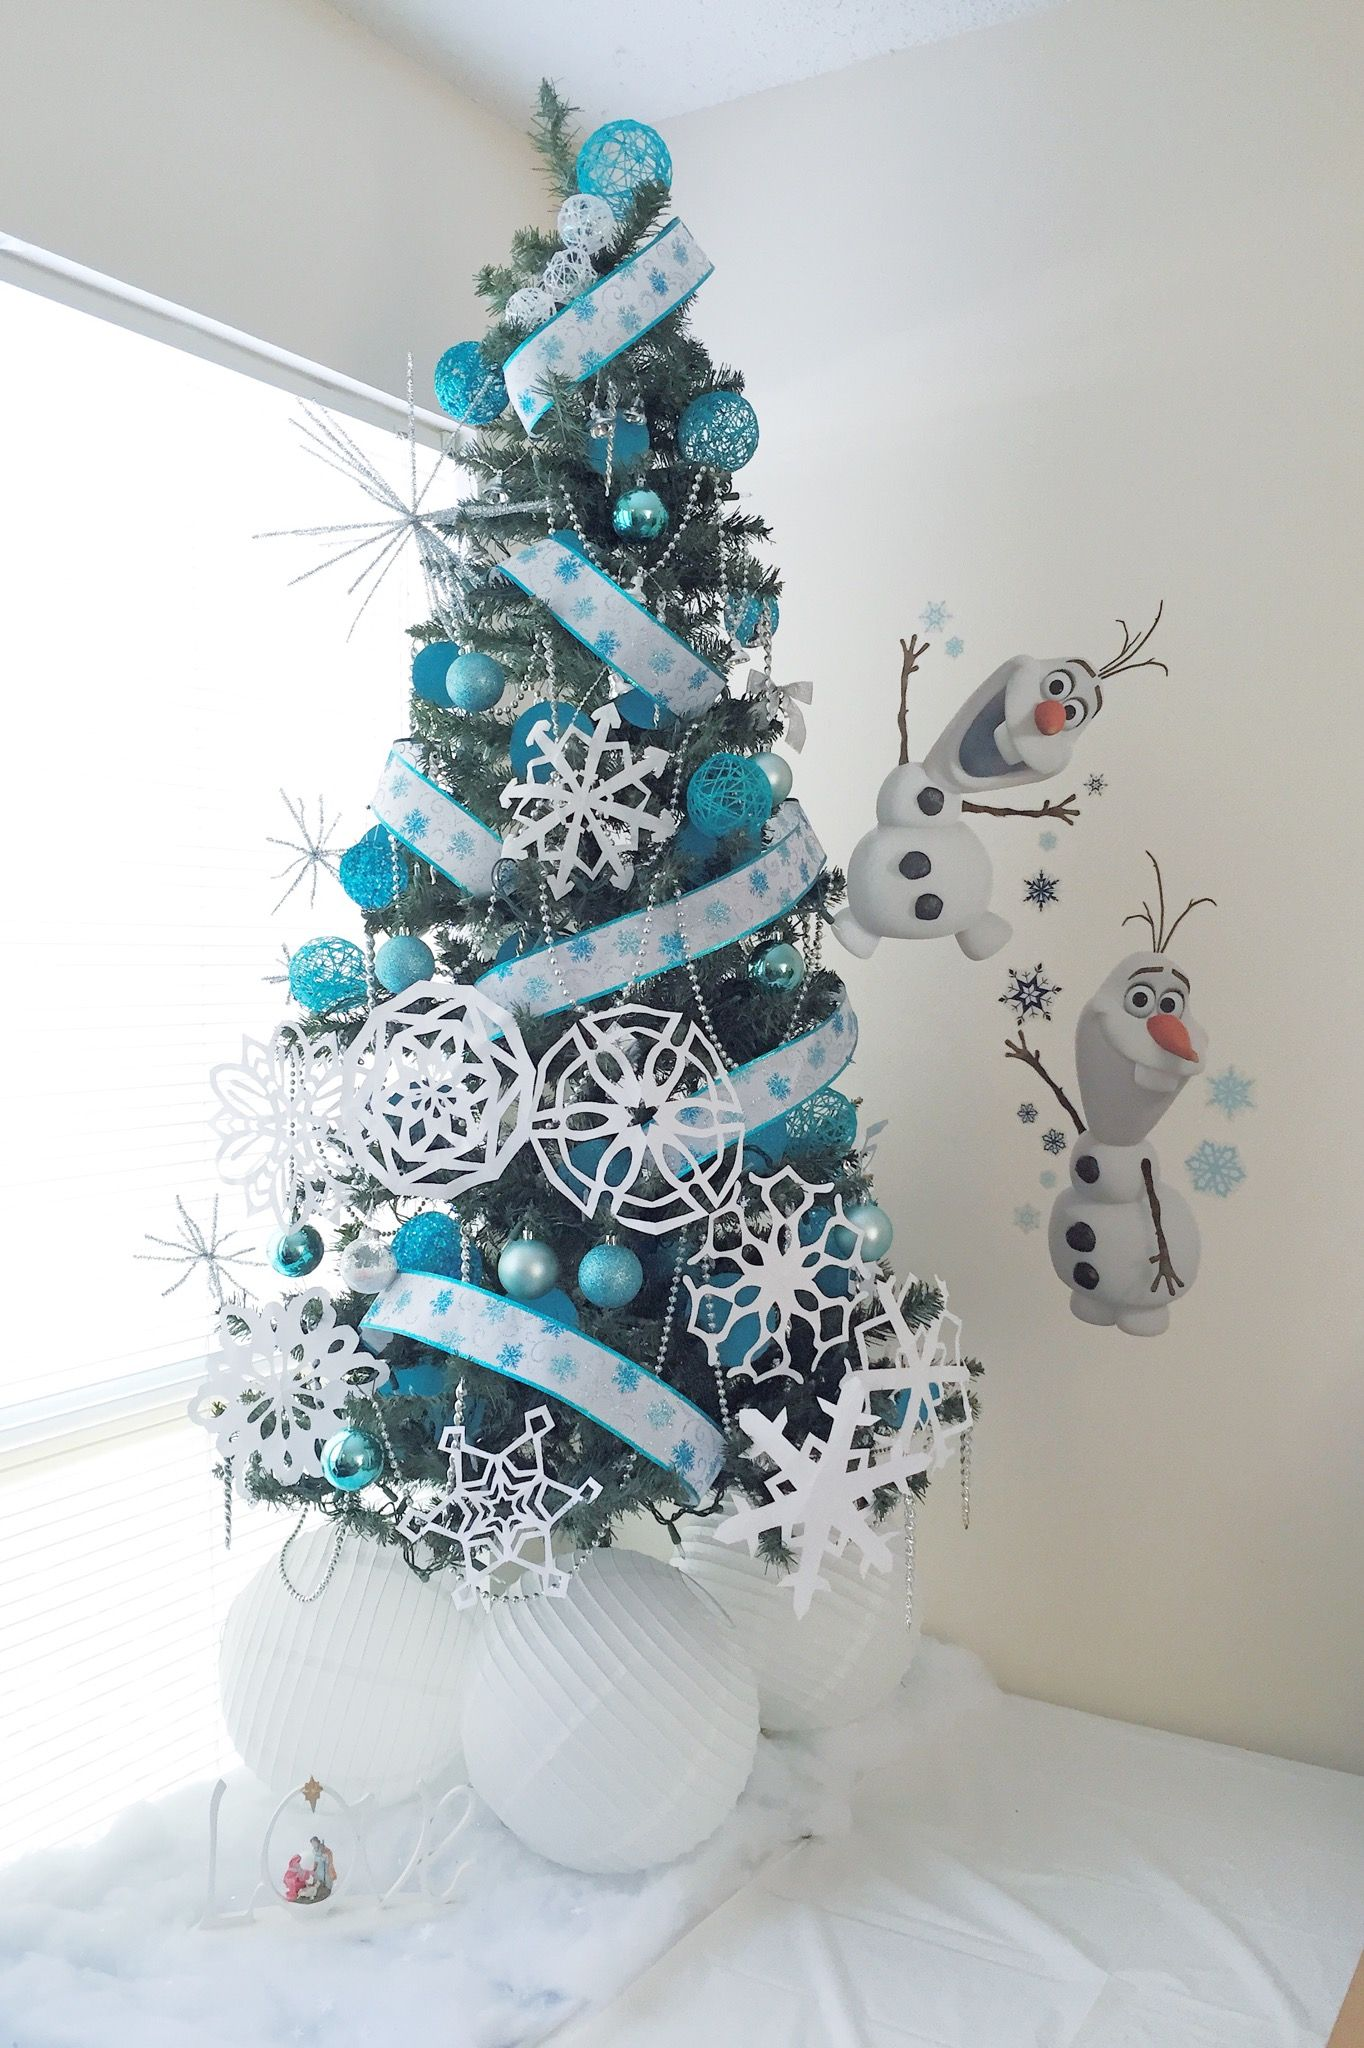 Christmas Frozen Decorations Ideas | Decoration, Frozen christmas ...